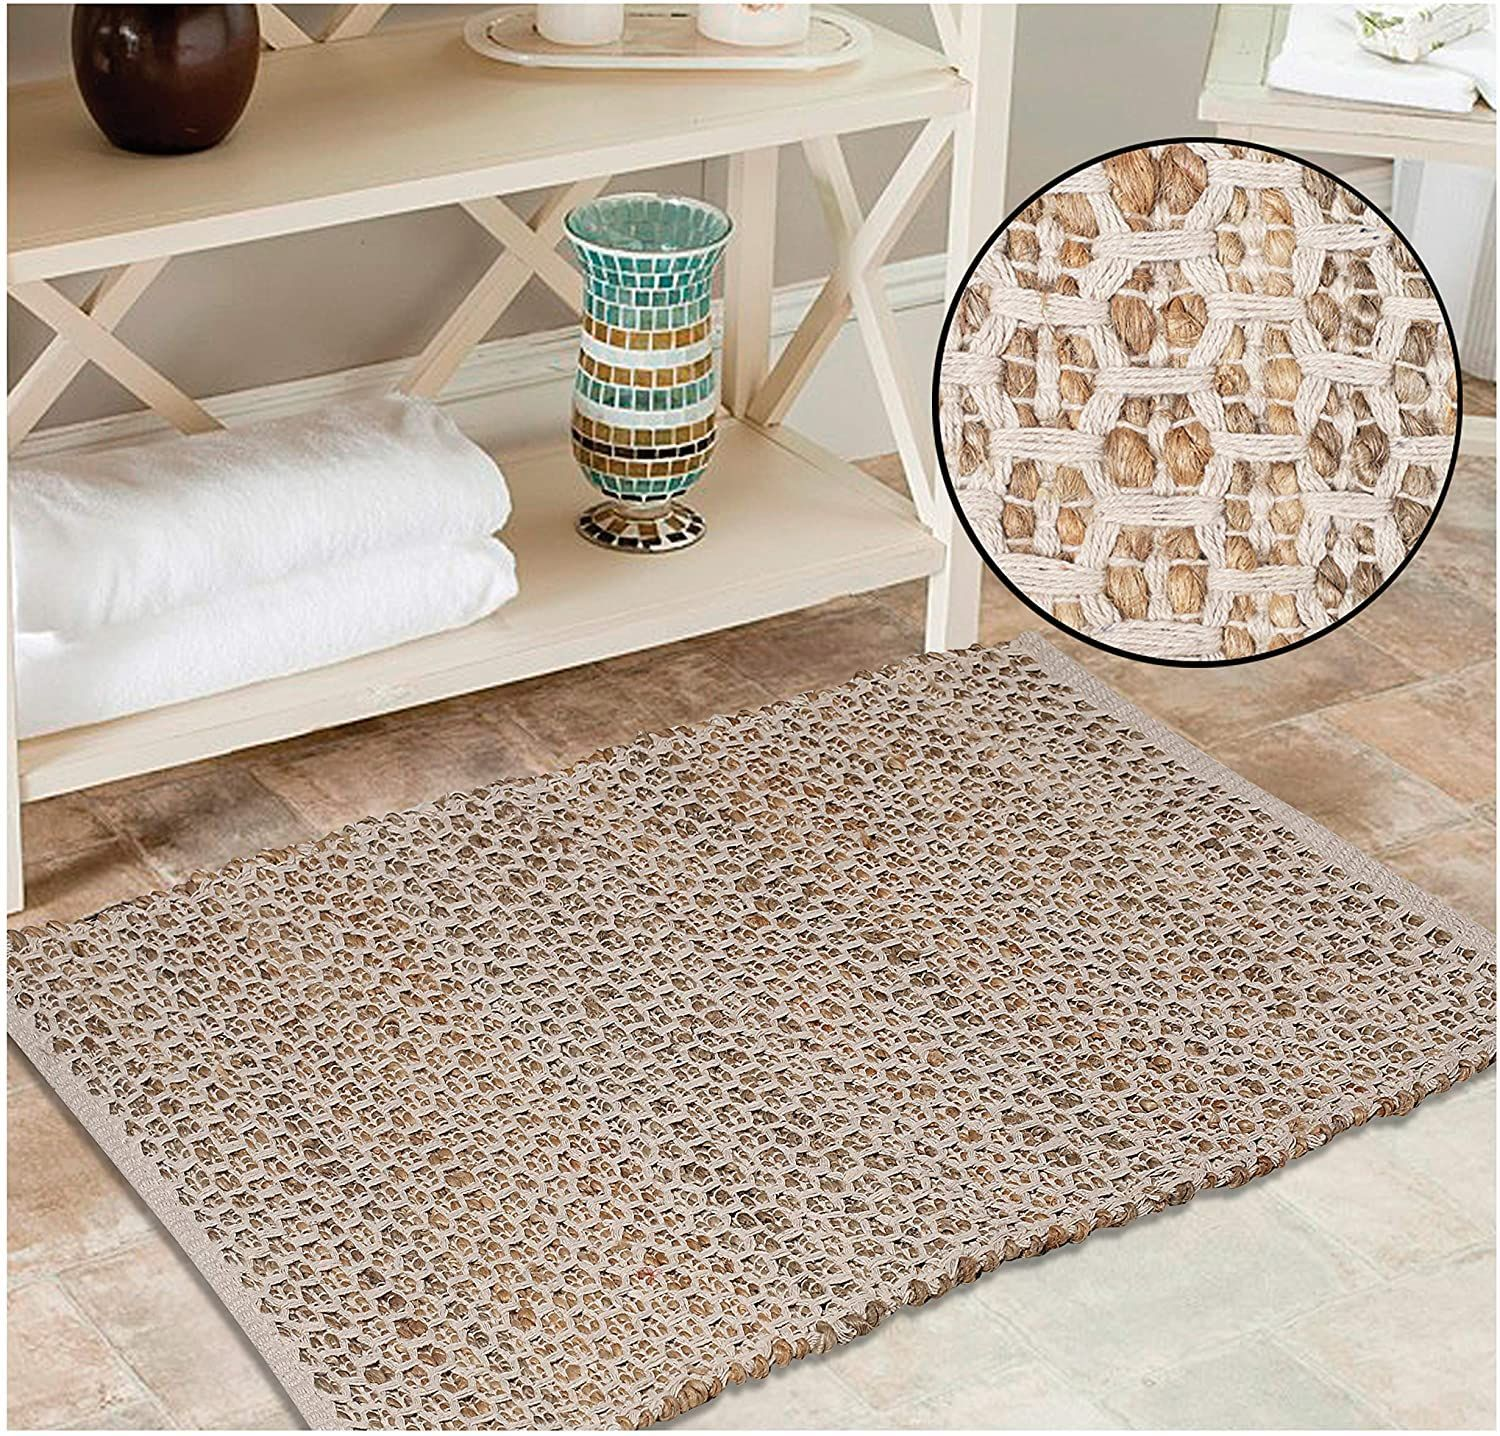 Pin On Farmhouse Area Rugs #rustic #area #rugs #for #living #room